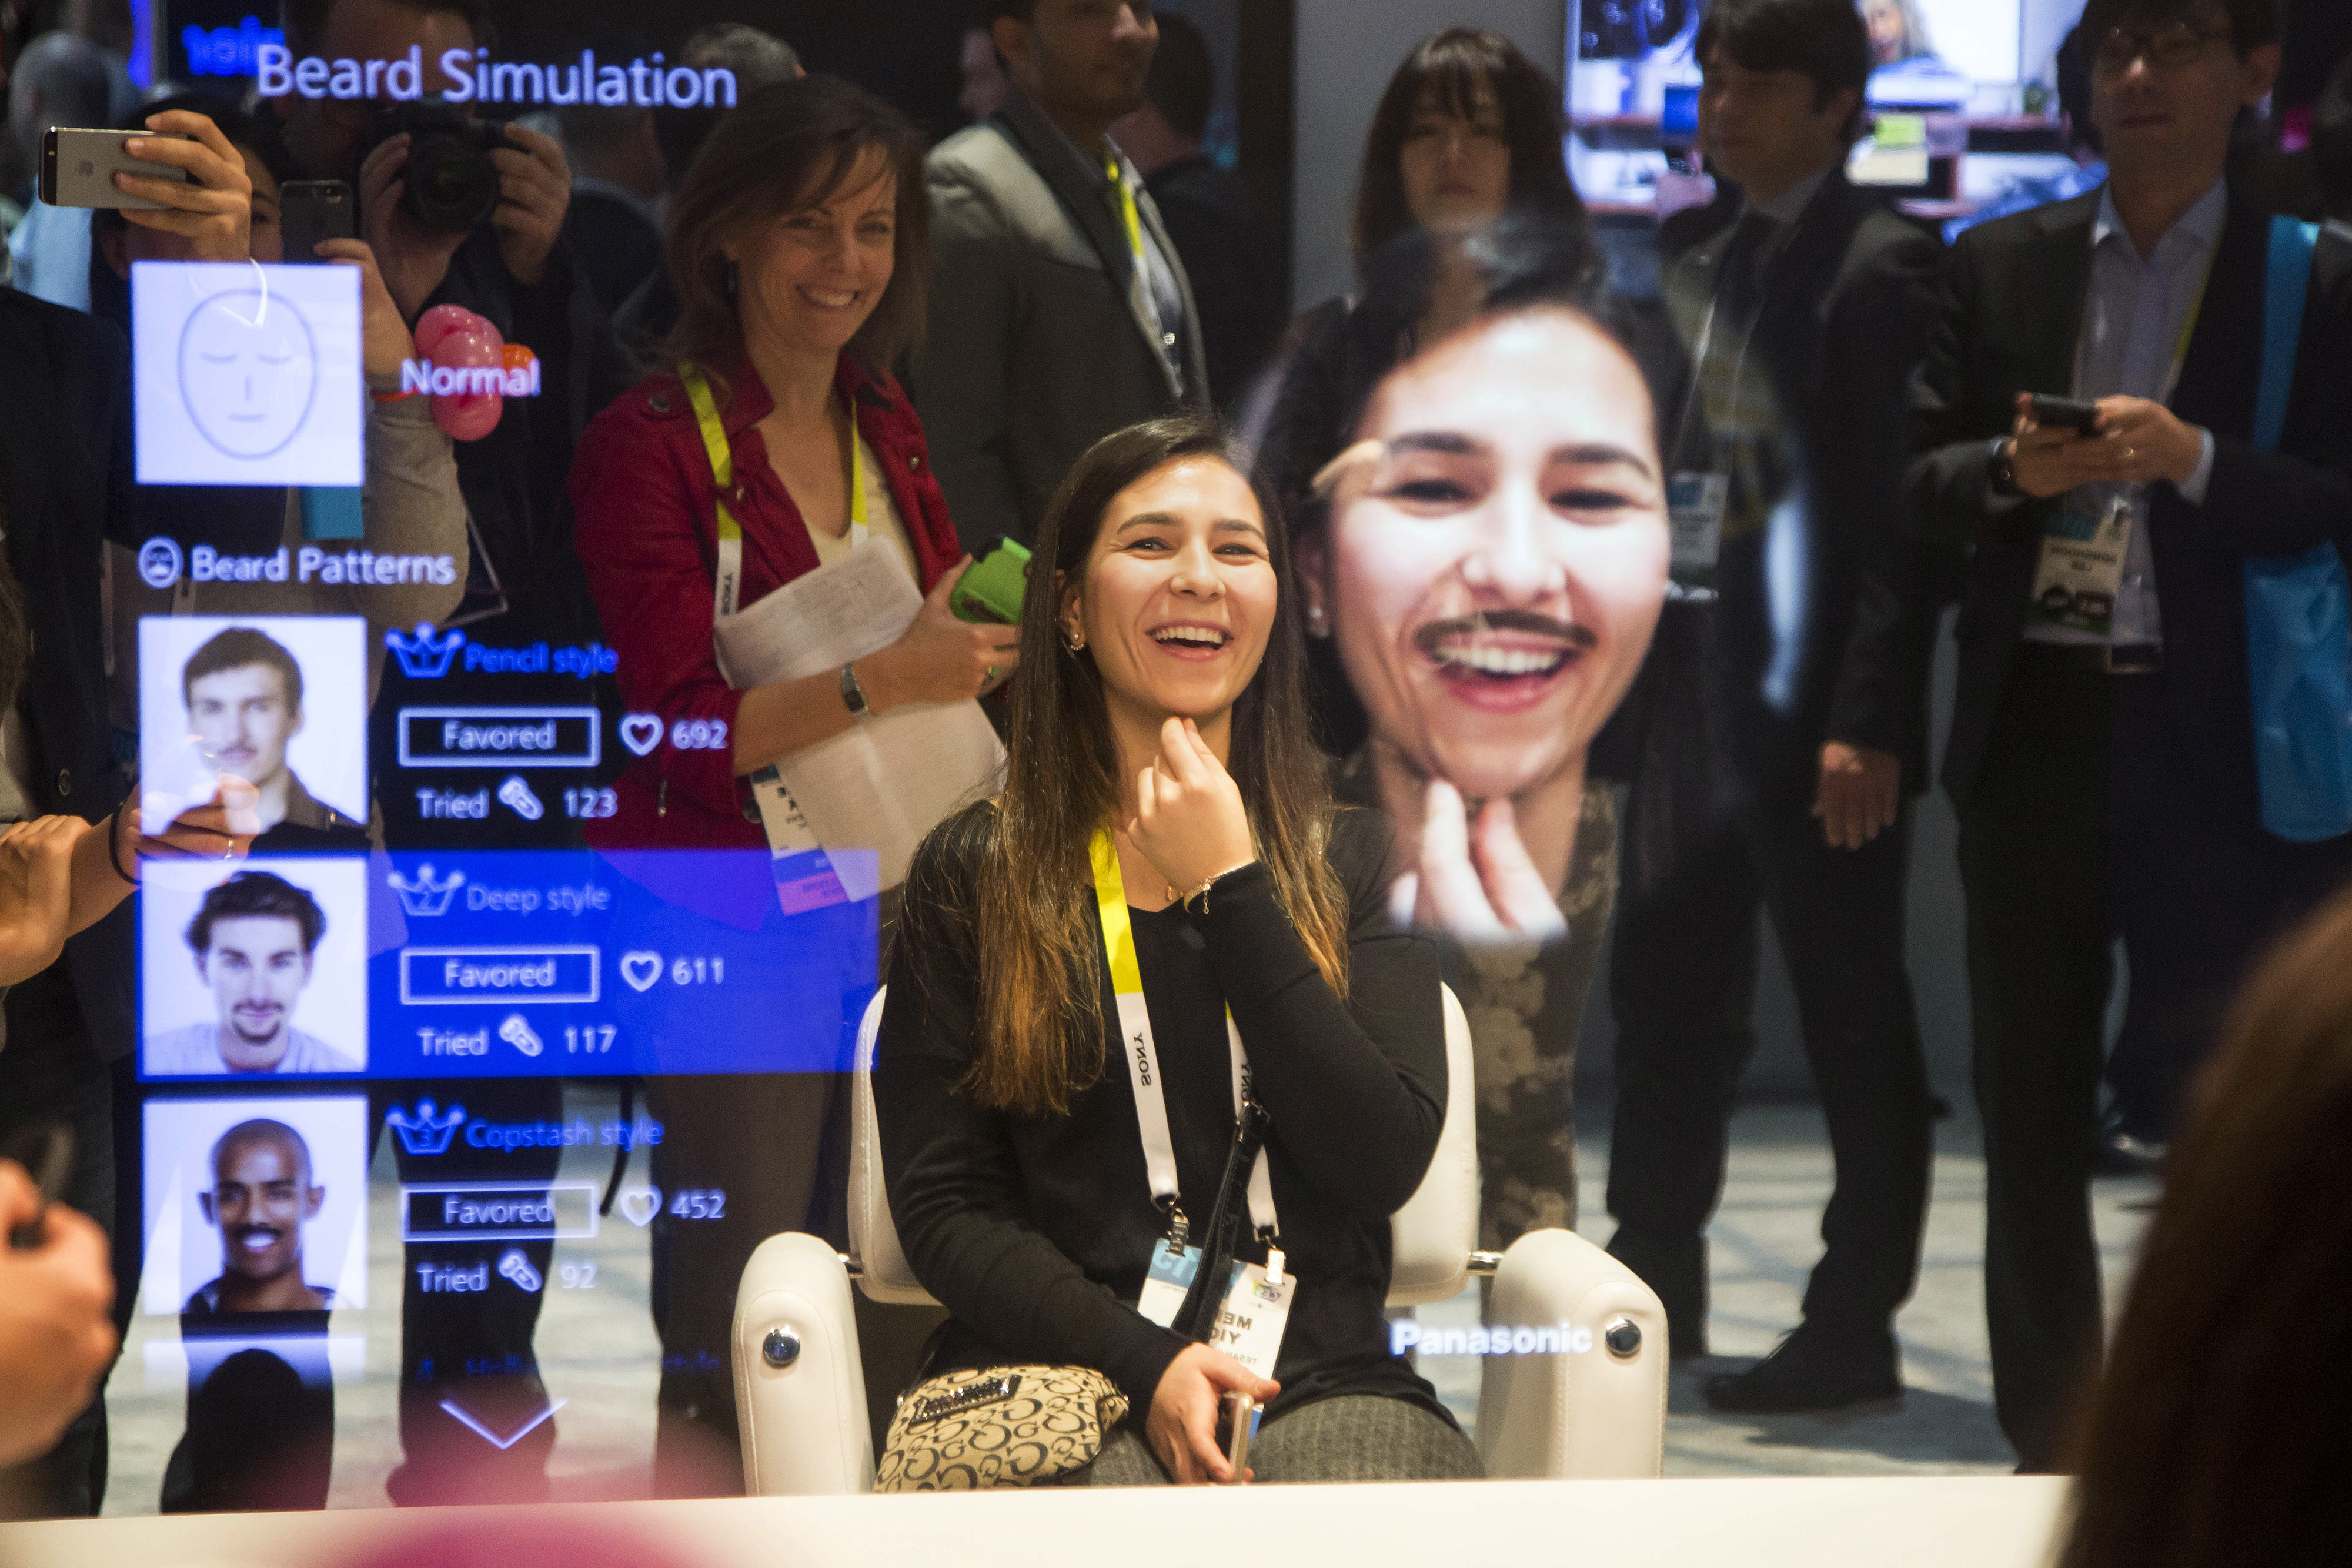 An attendee tries out the beard simulation effect on a Panasonic Corp. Smart Mirror during the 2015 Consumer Electronics Show in Las Vegas, on January 6, 2015.